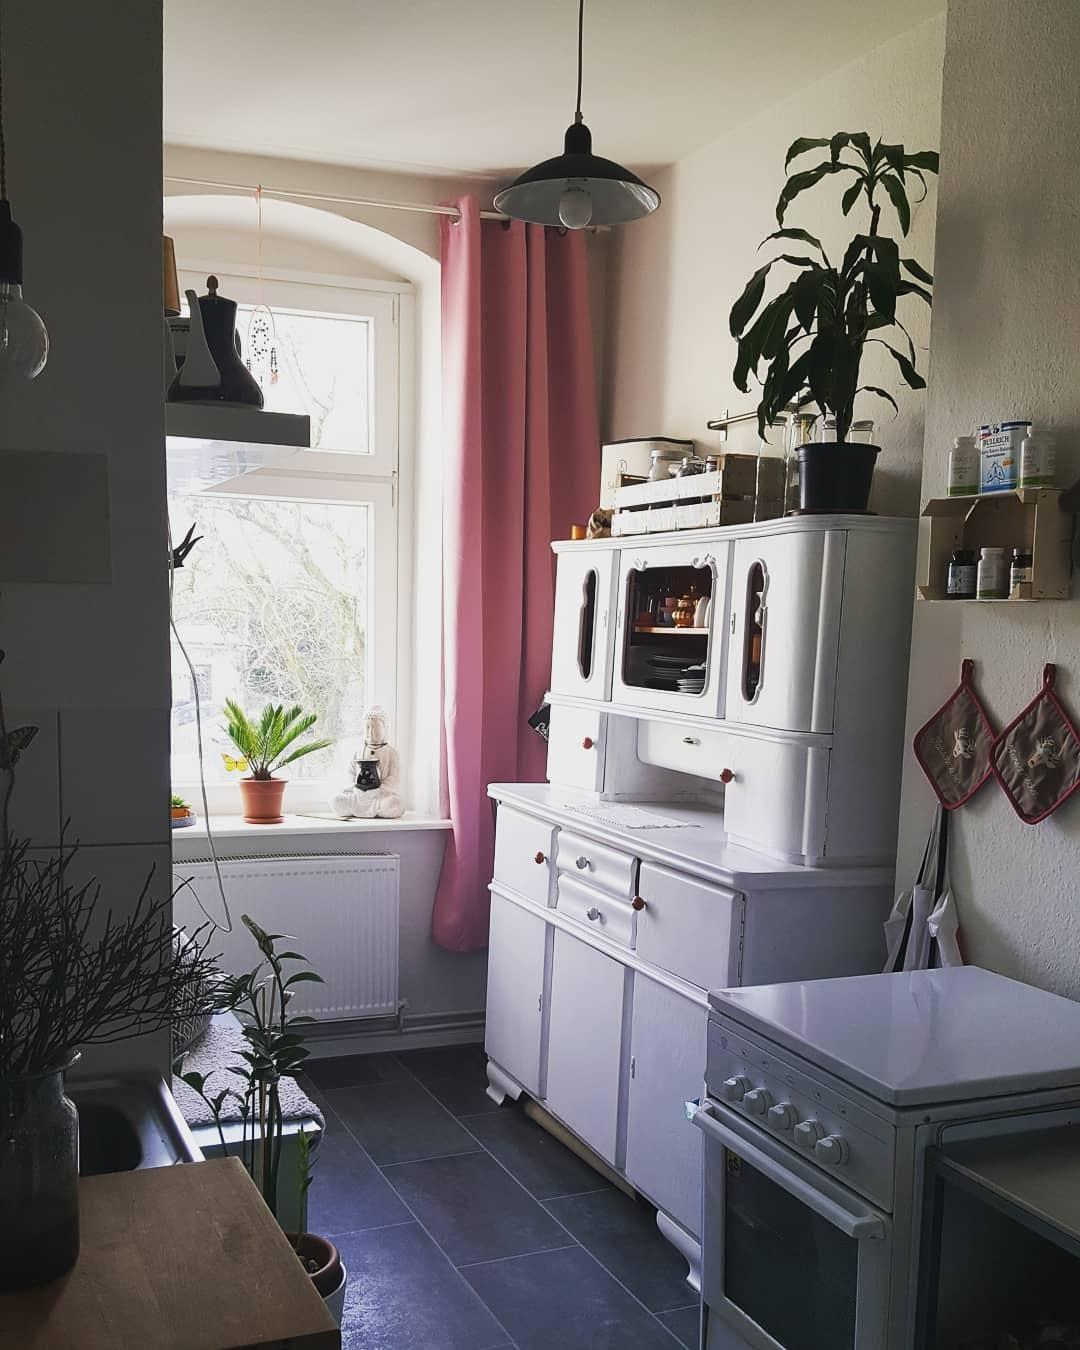 #Kitchen #retro #vintage